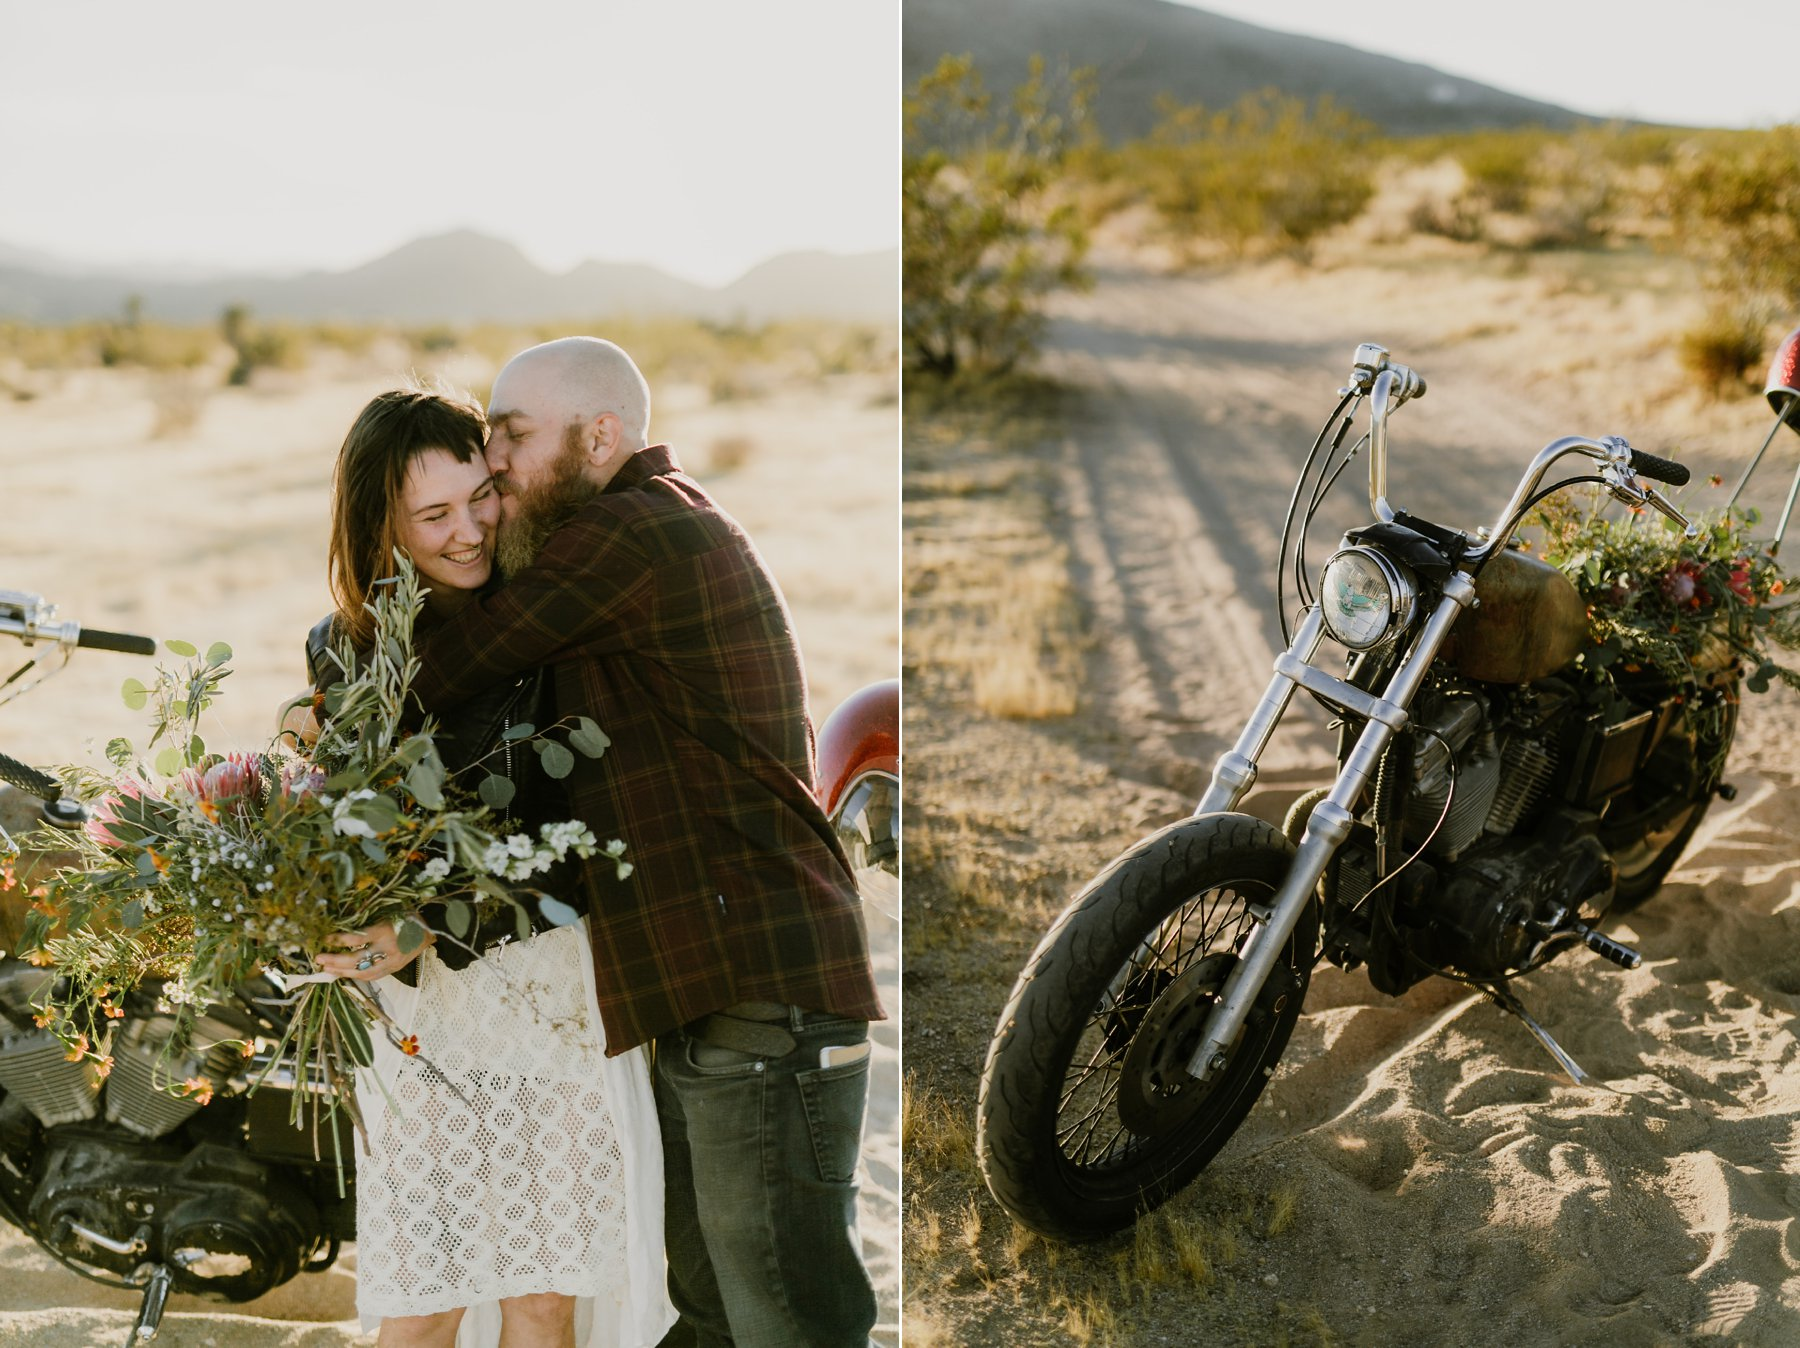 motorcycle-elopement-in-joshua-tree_0002.jpg